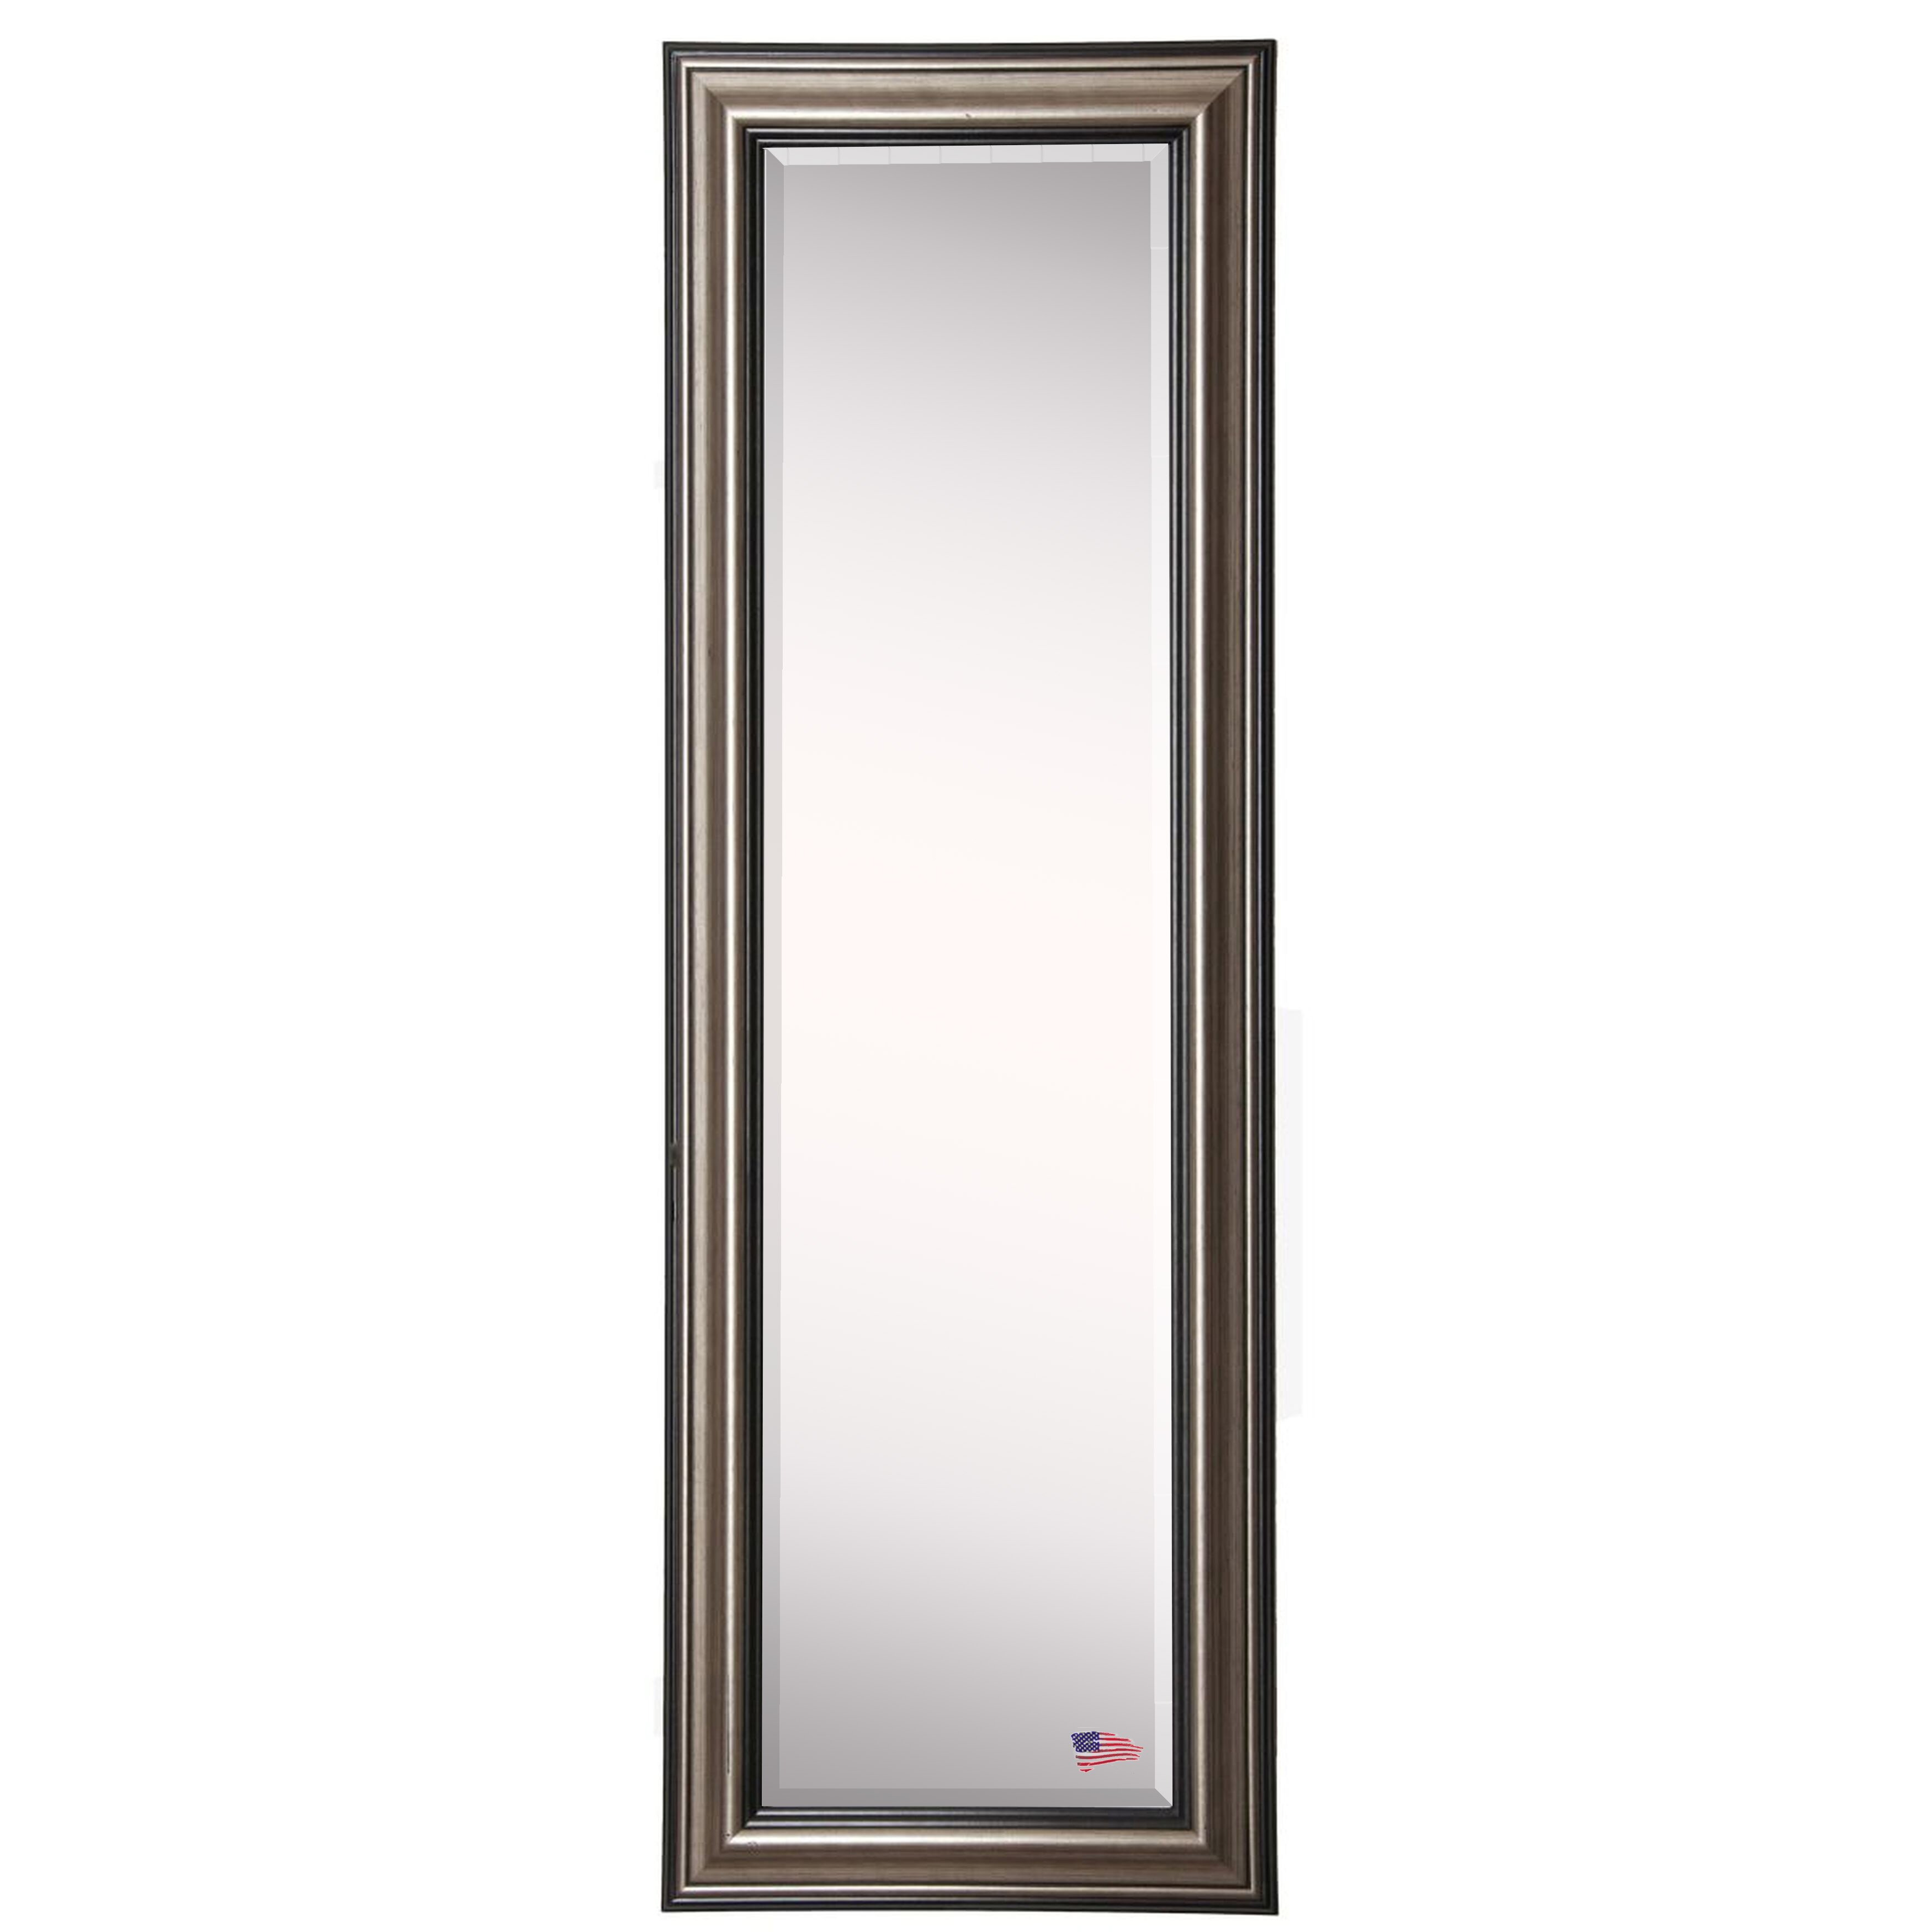 Darby home co antique silver full length beveled body for Full length glass mirror